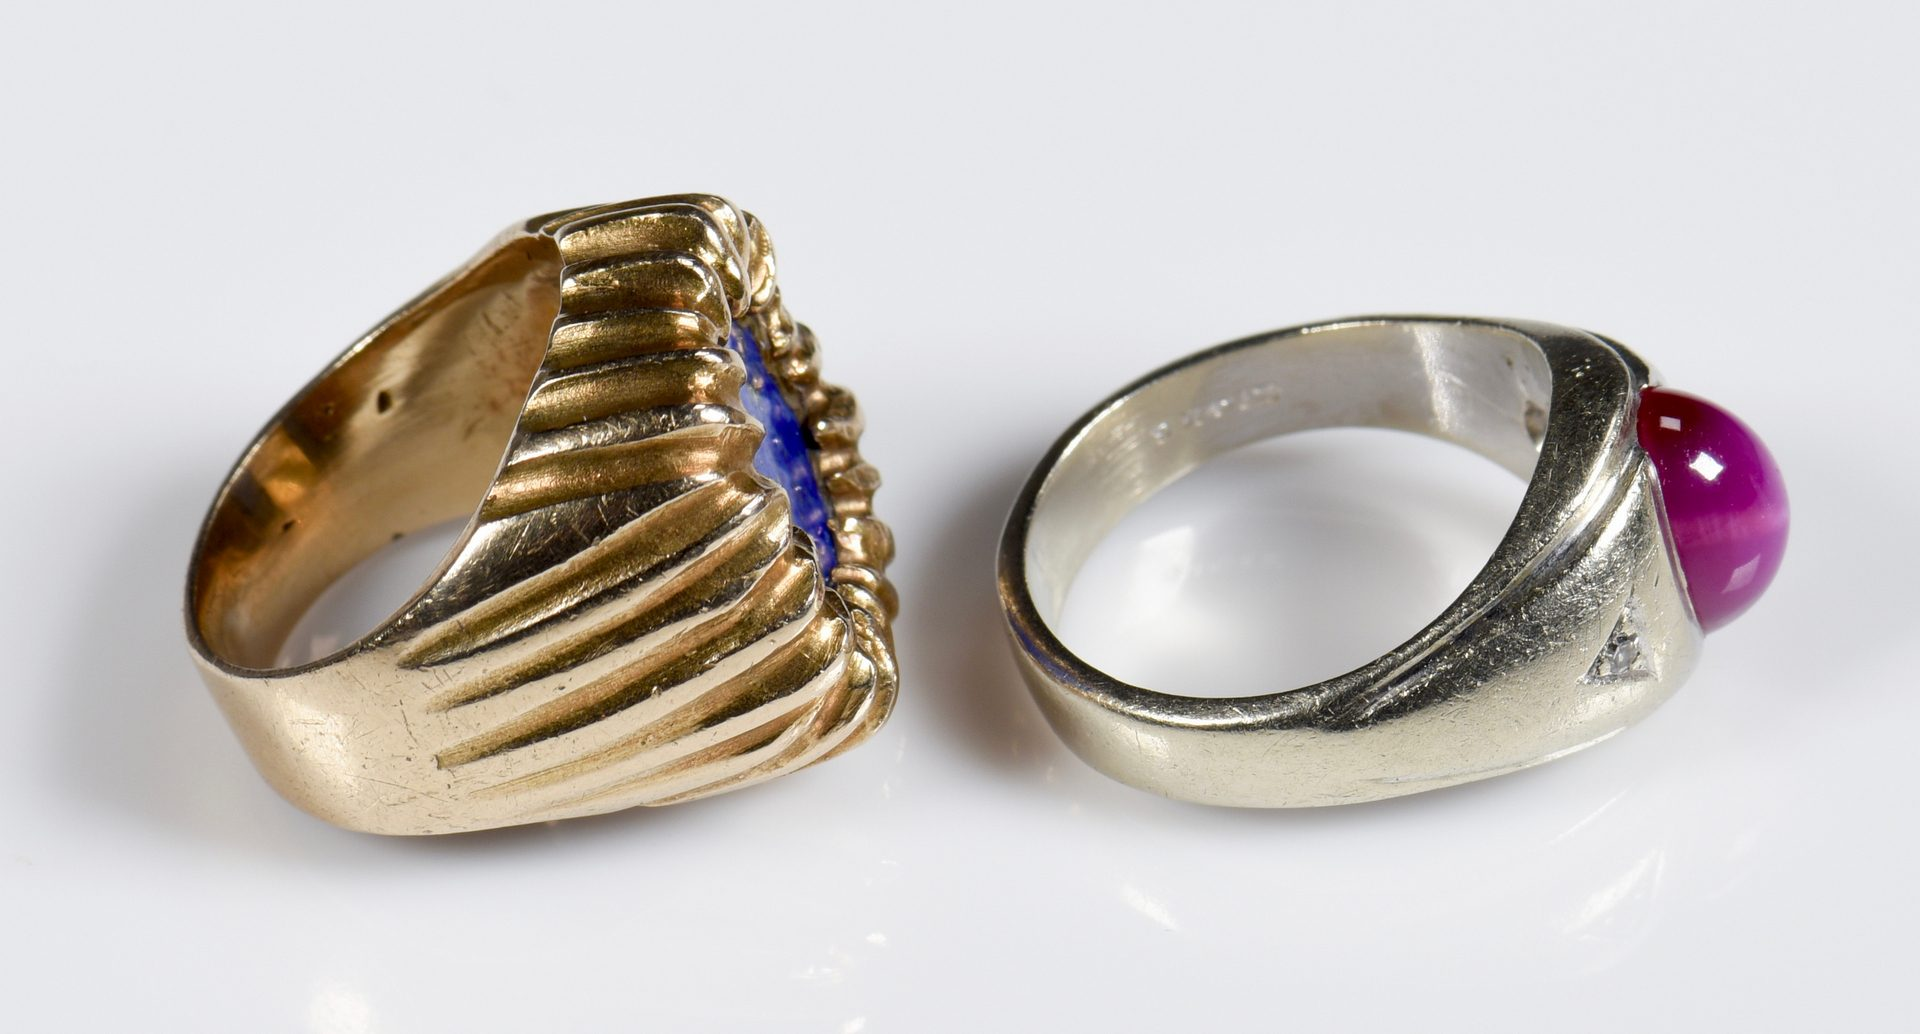 Lot 955: 5 14K and 18K Gent's Jewelry Items